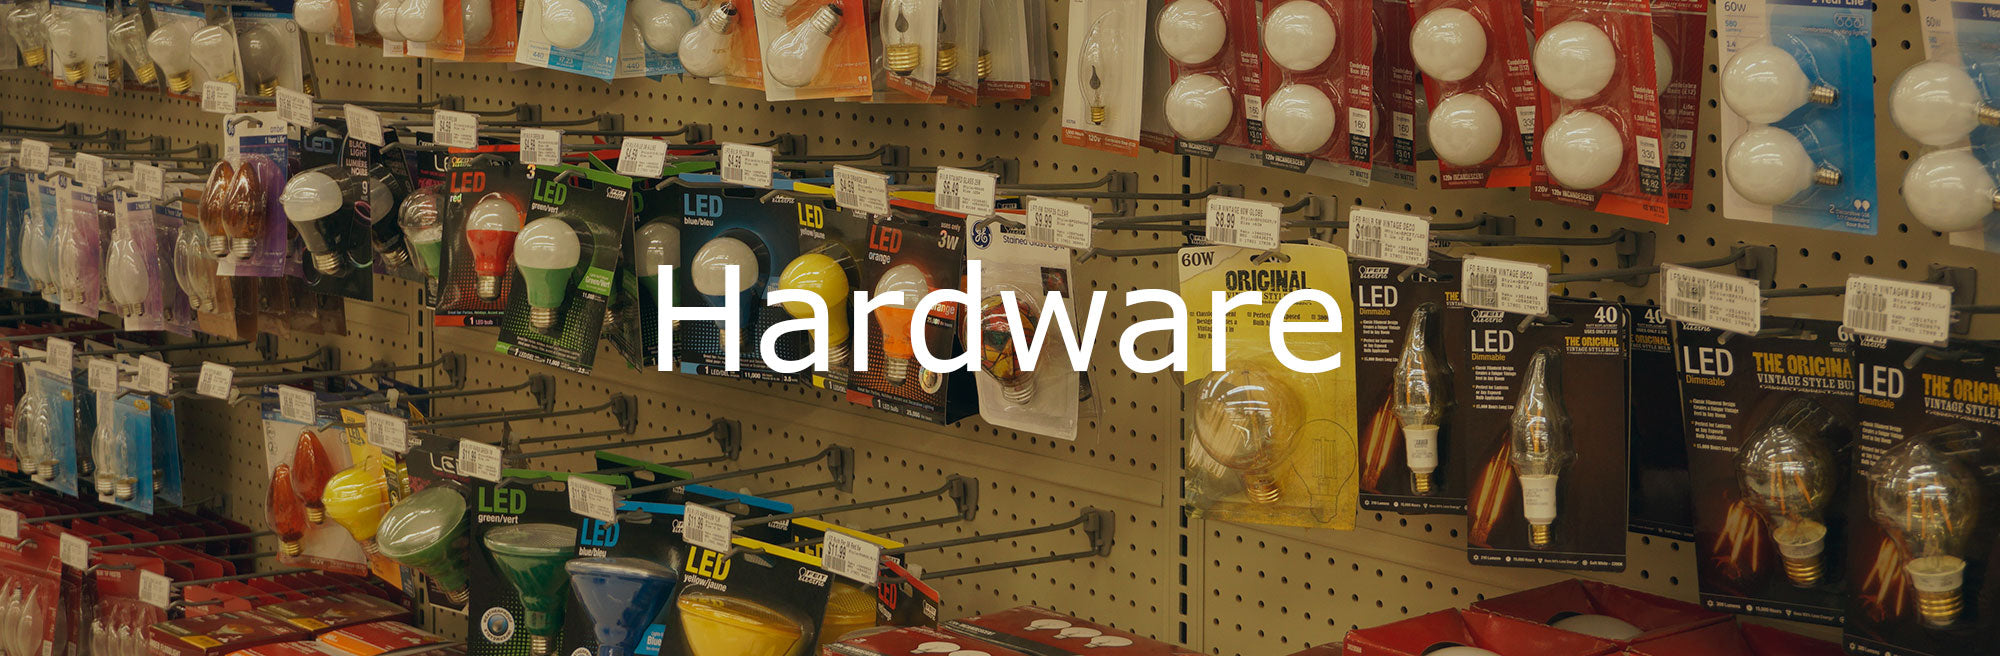 Hardware Department at Good's Store